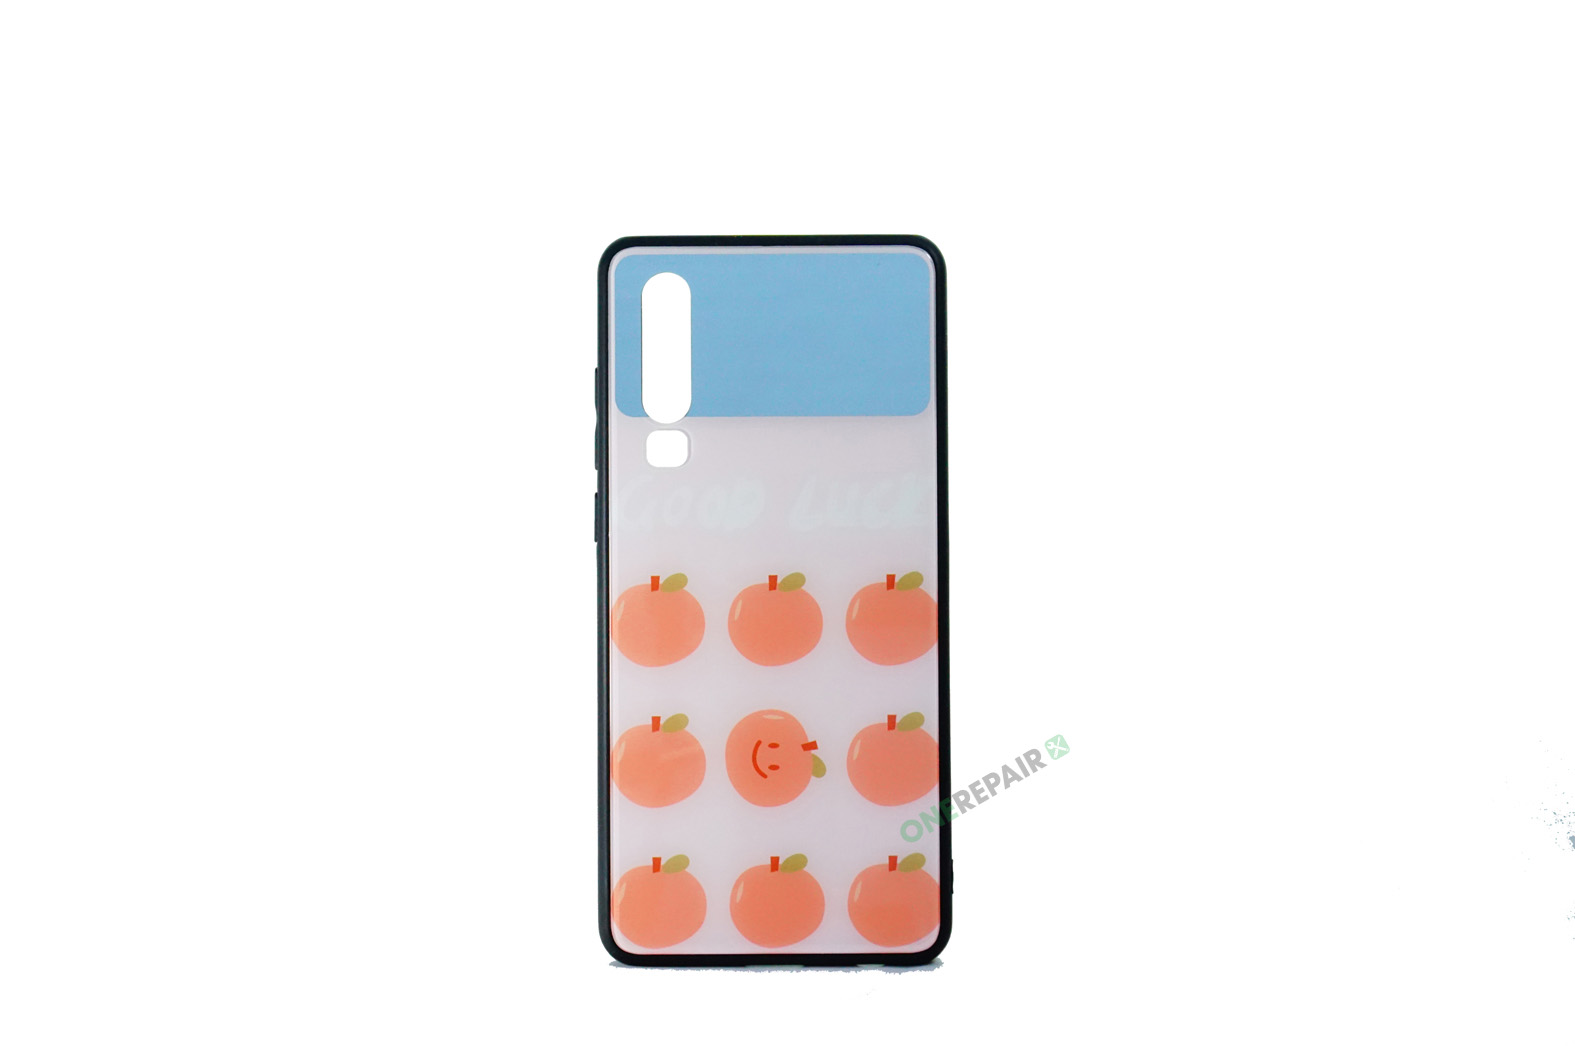 Huawei P20 spejl cover